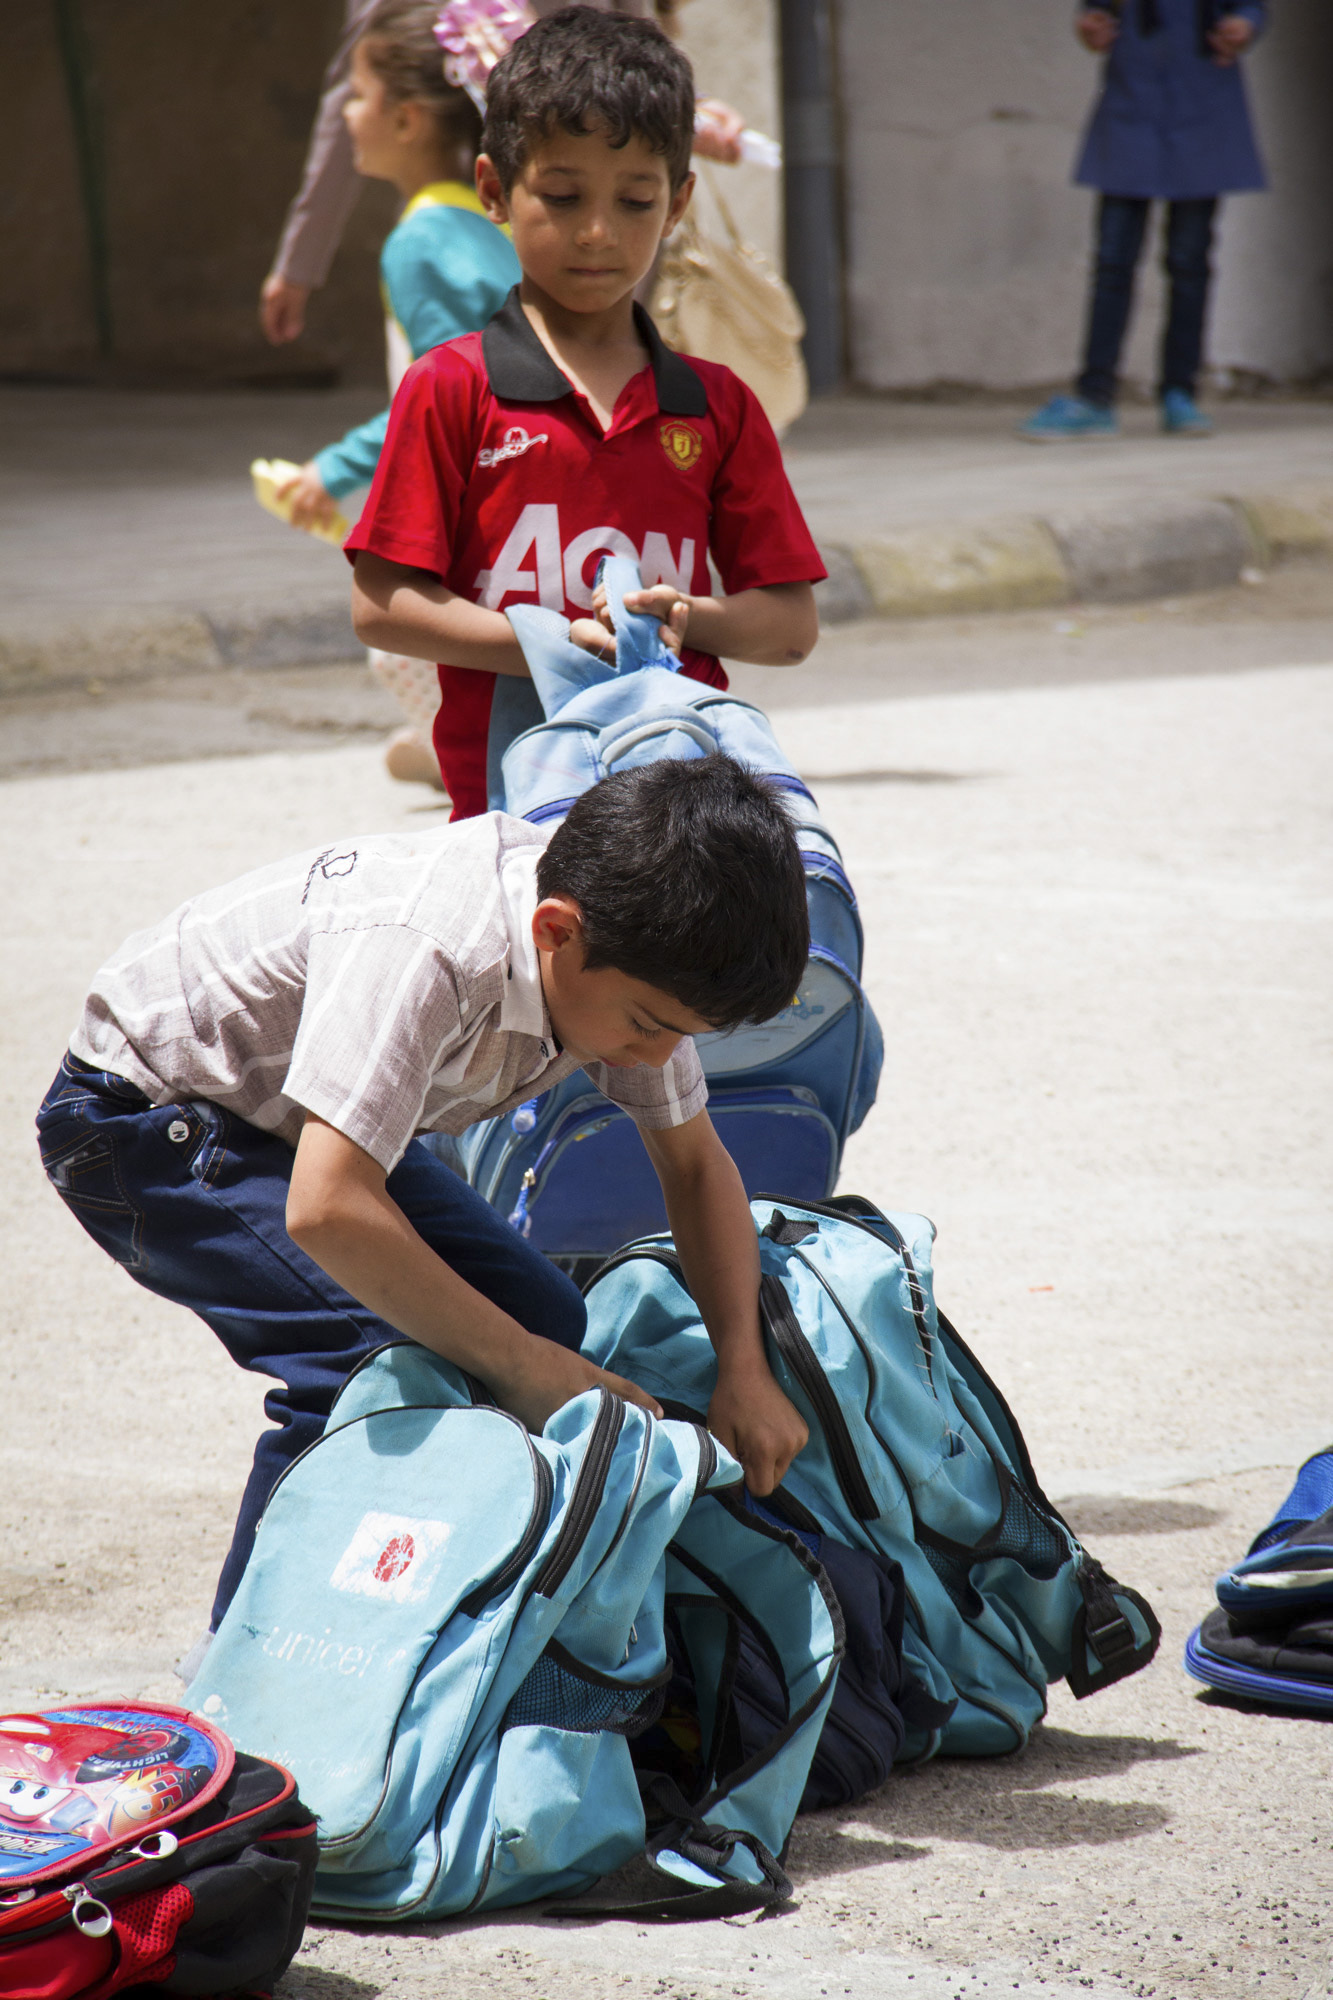 Most of the Syrian refugee students have a UNICEF school bag. They depend on the help of international organizations to participate in school life.